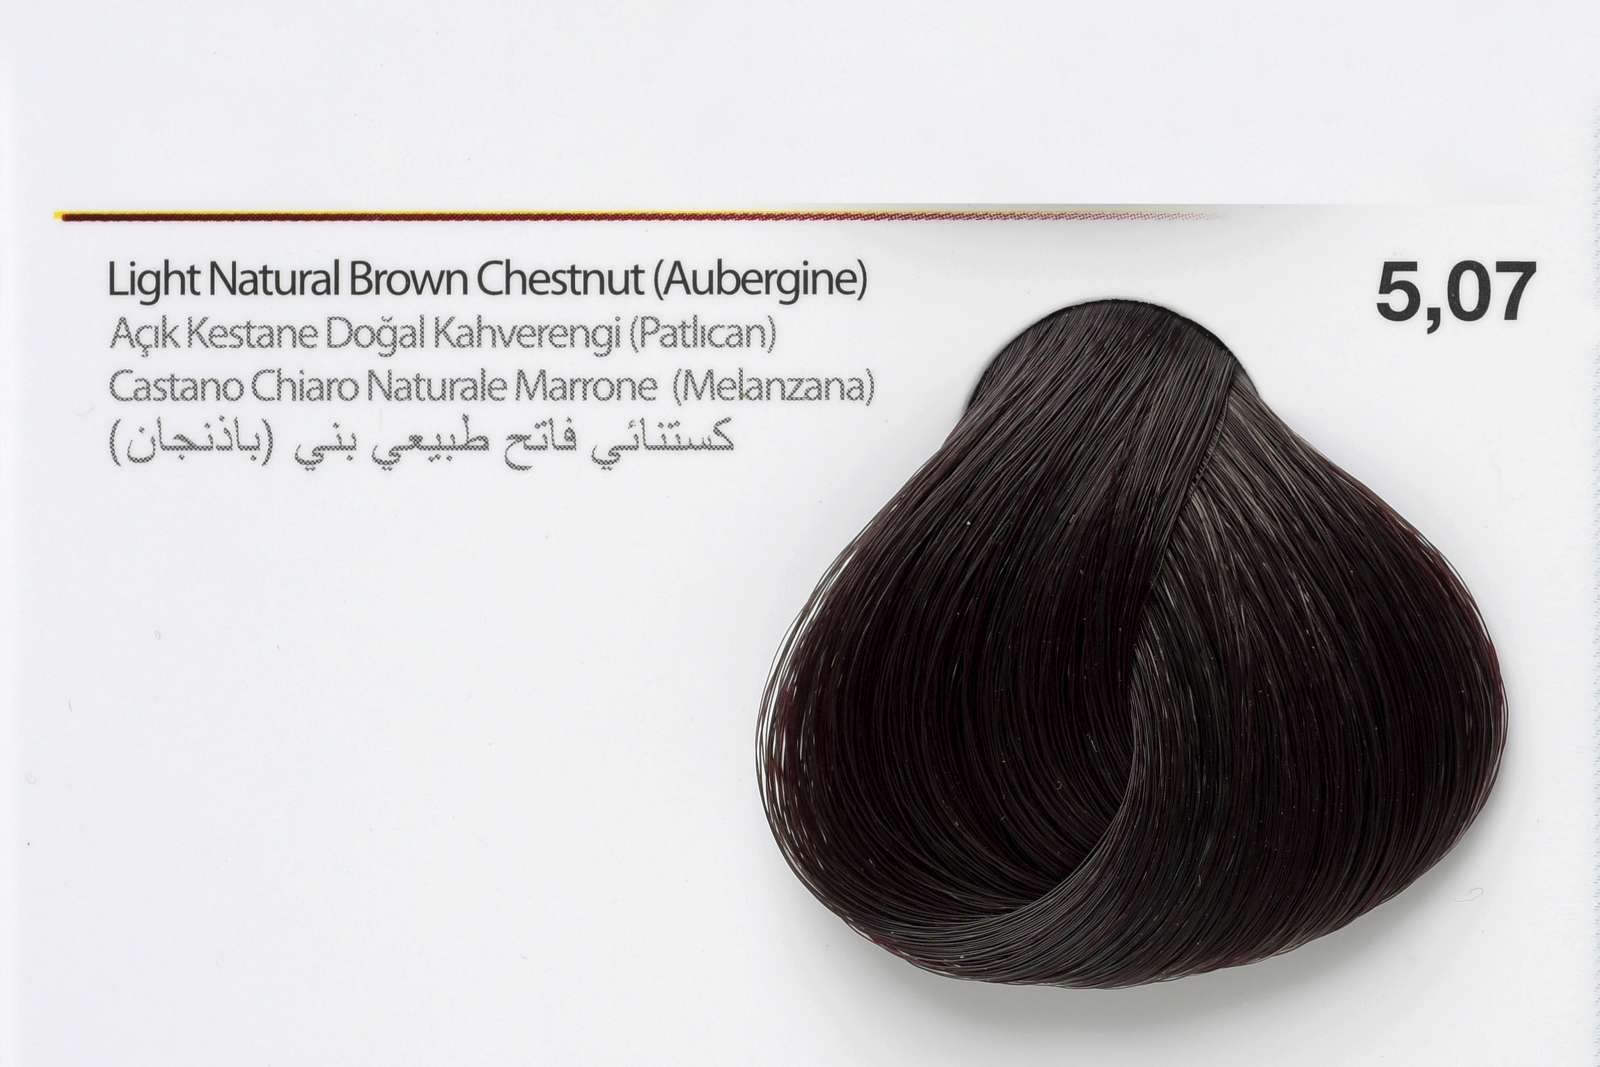 5,07 - Light Natural Brown Chestnut (Aubergine)